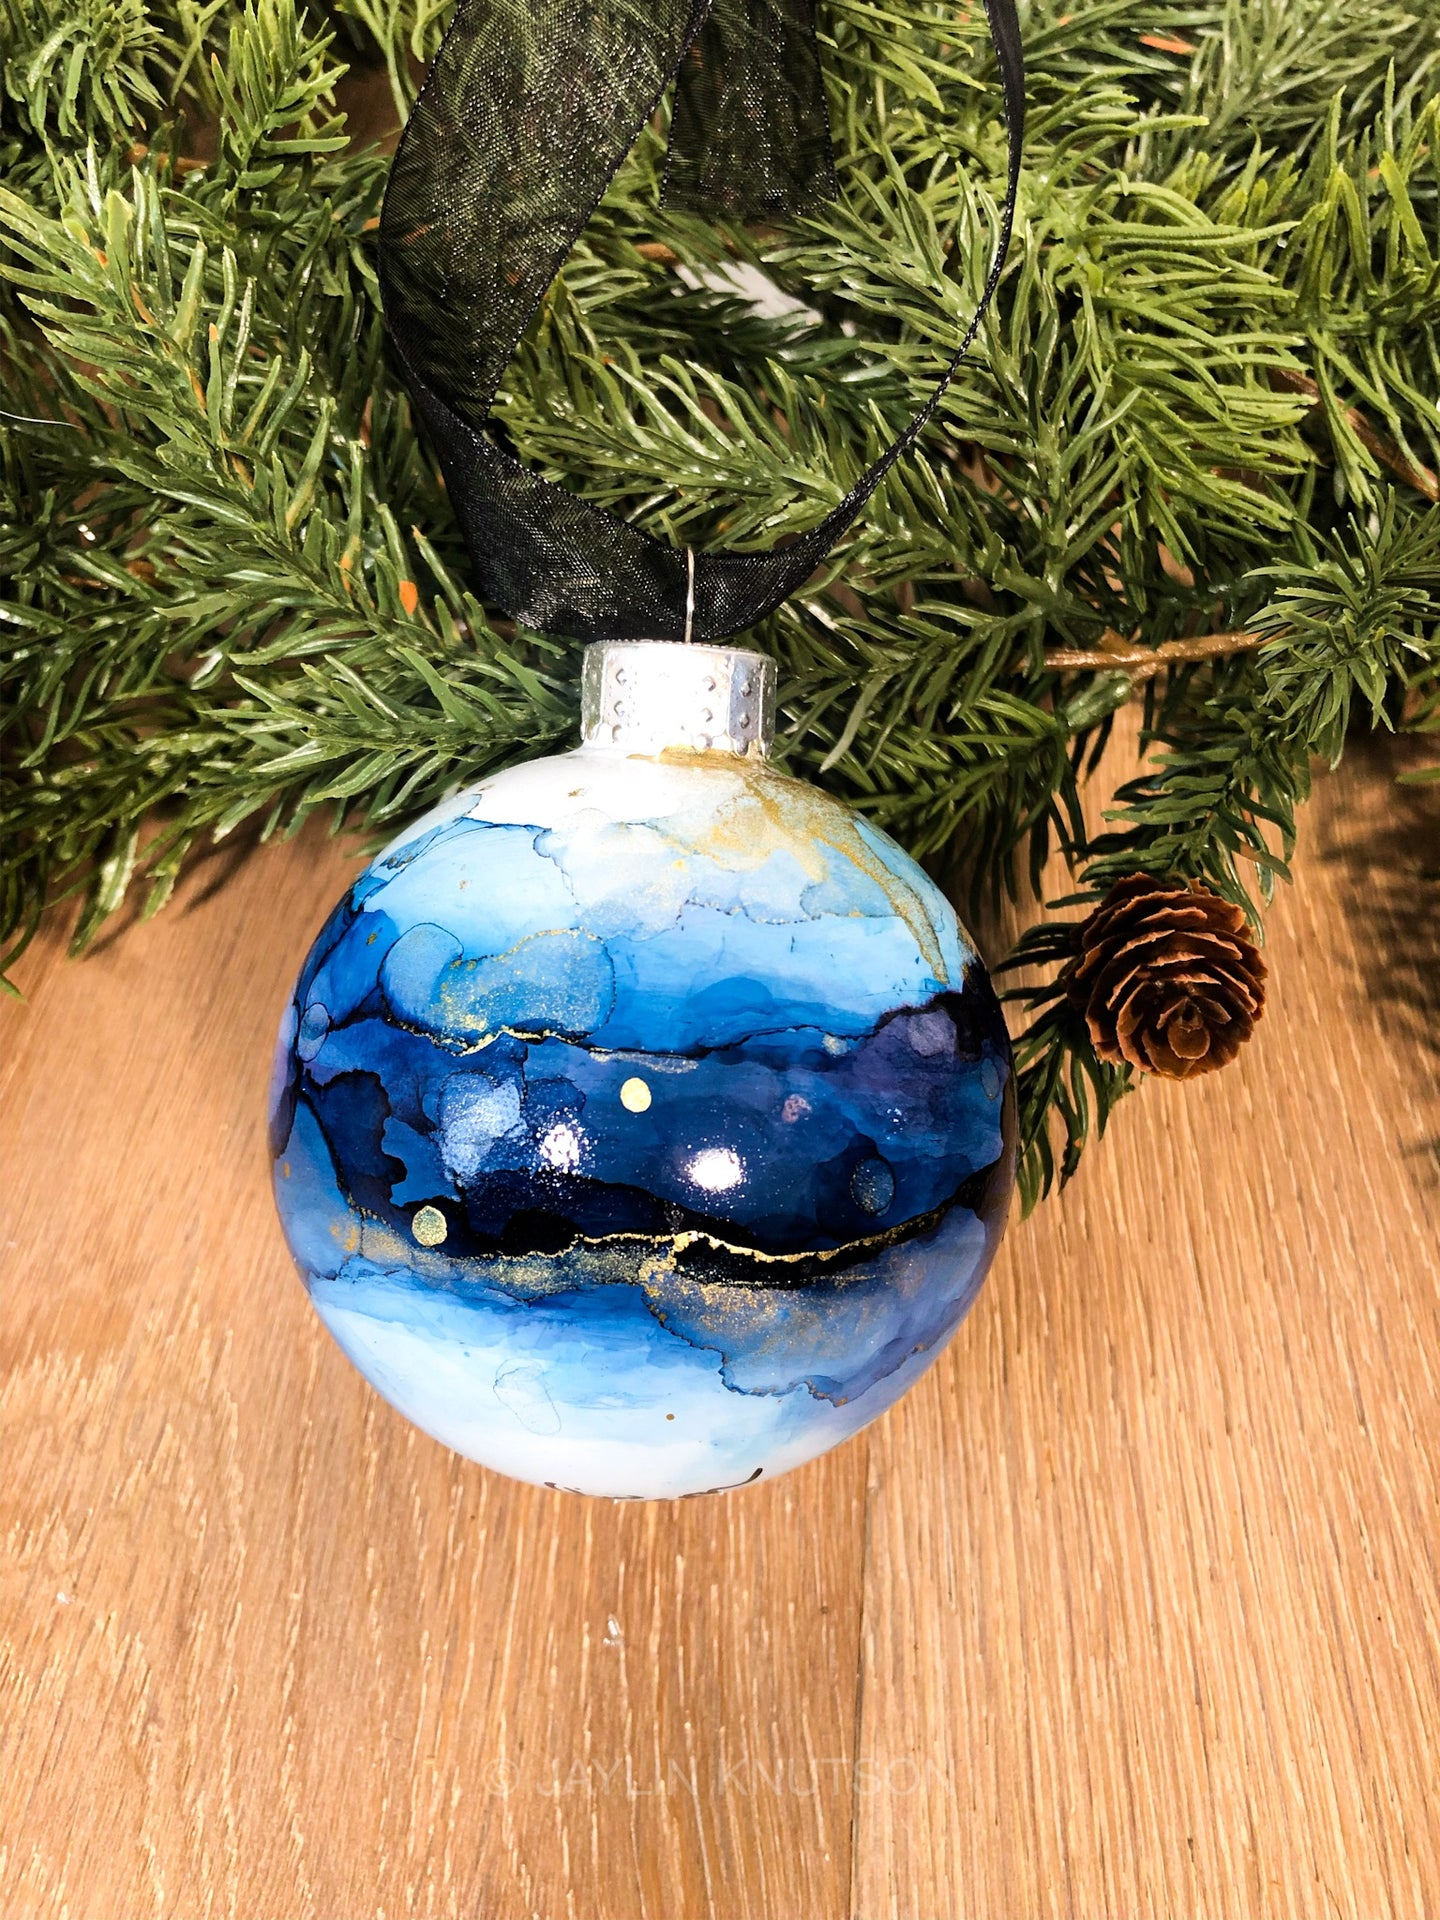 #3 - Holiday Hand-Painted Alcohol Ink Ornament